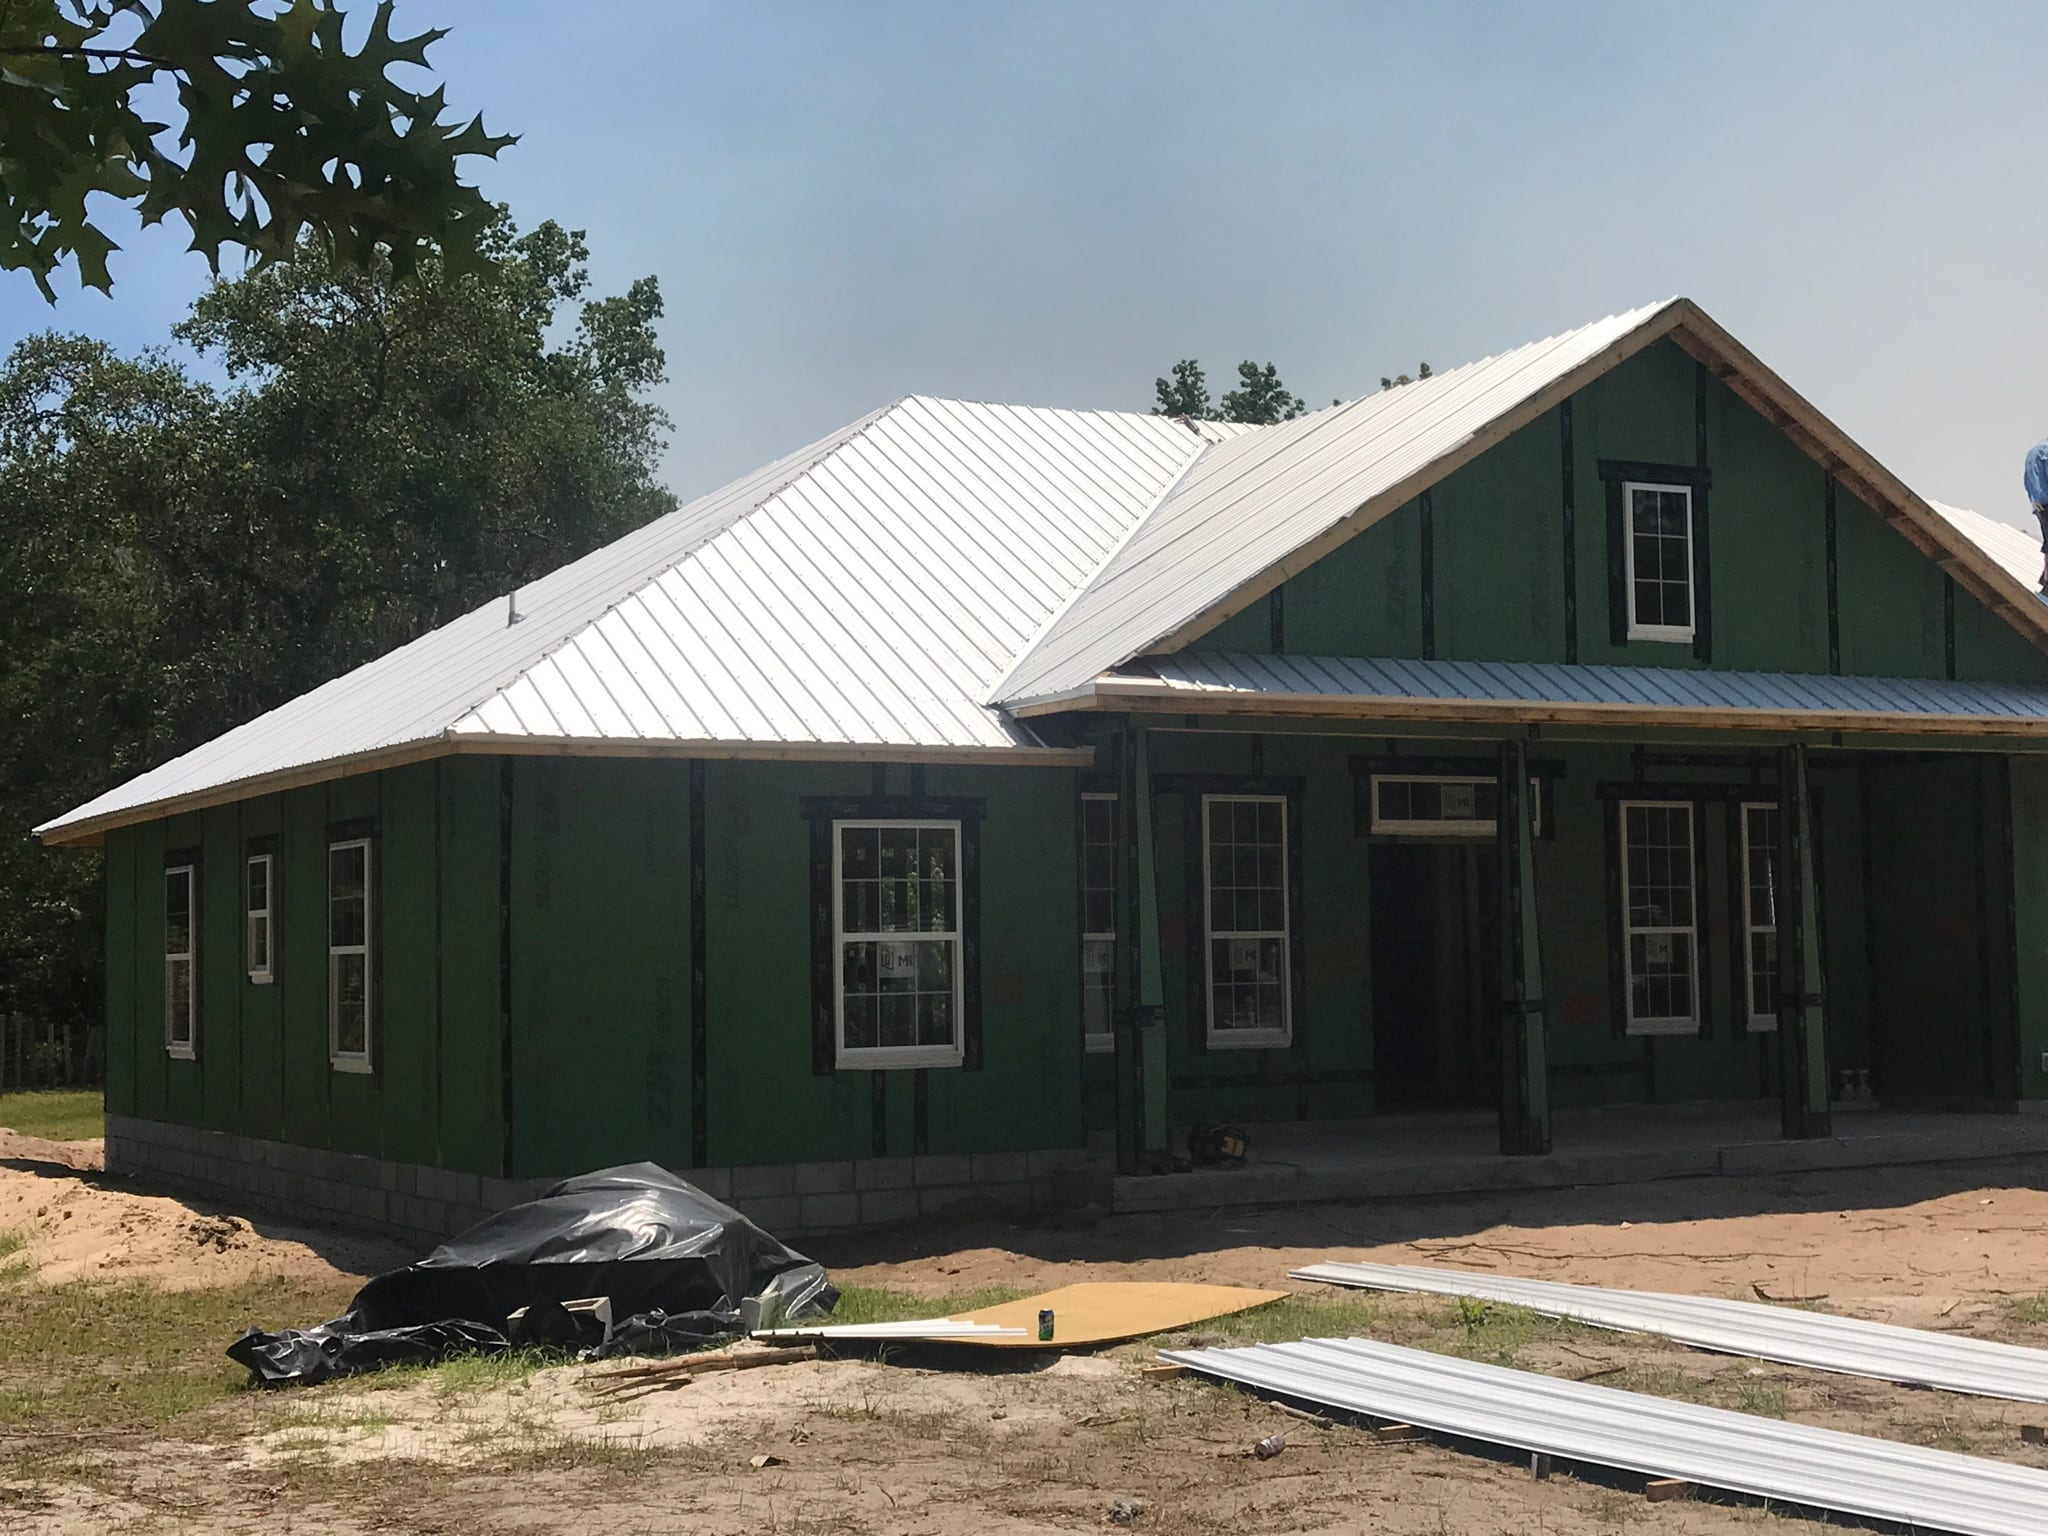 photo of roof on house under construction